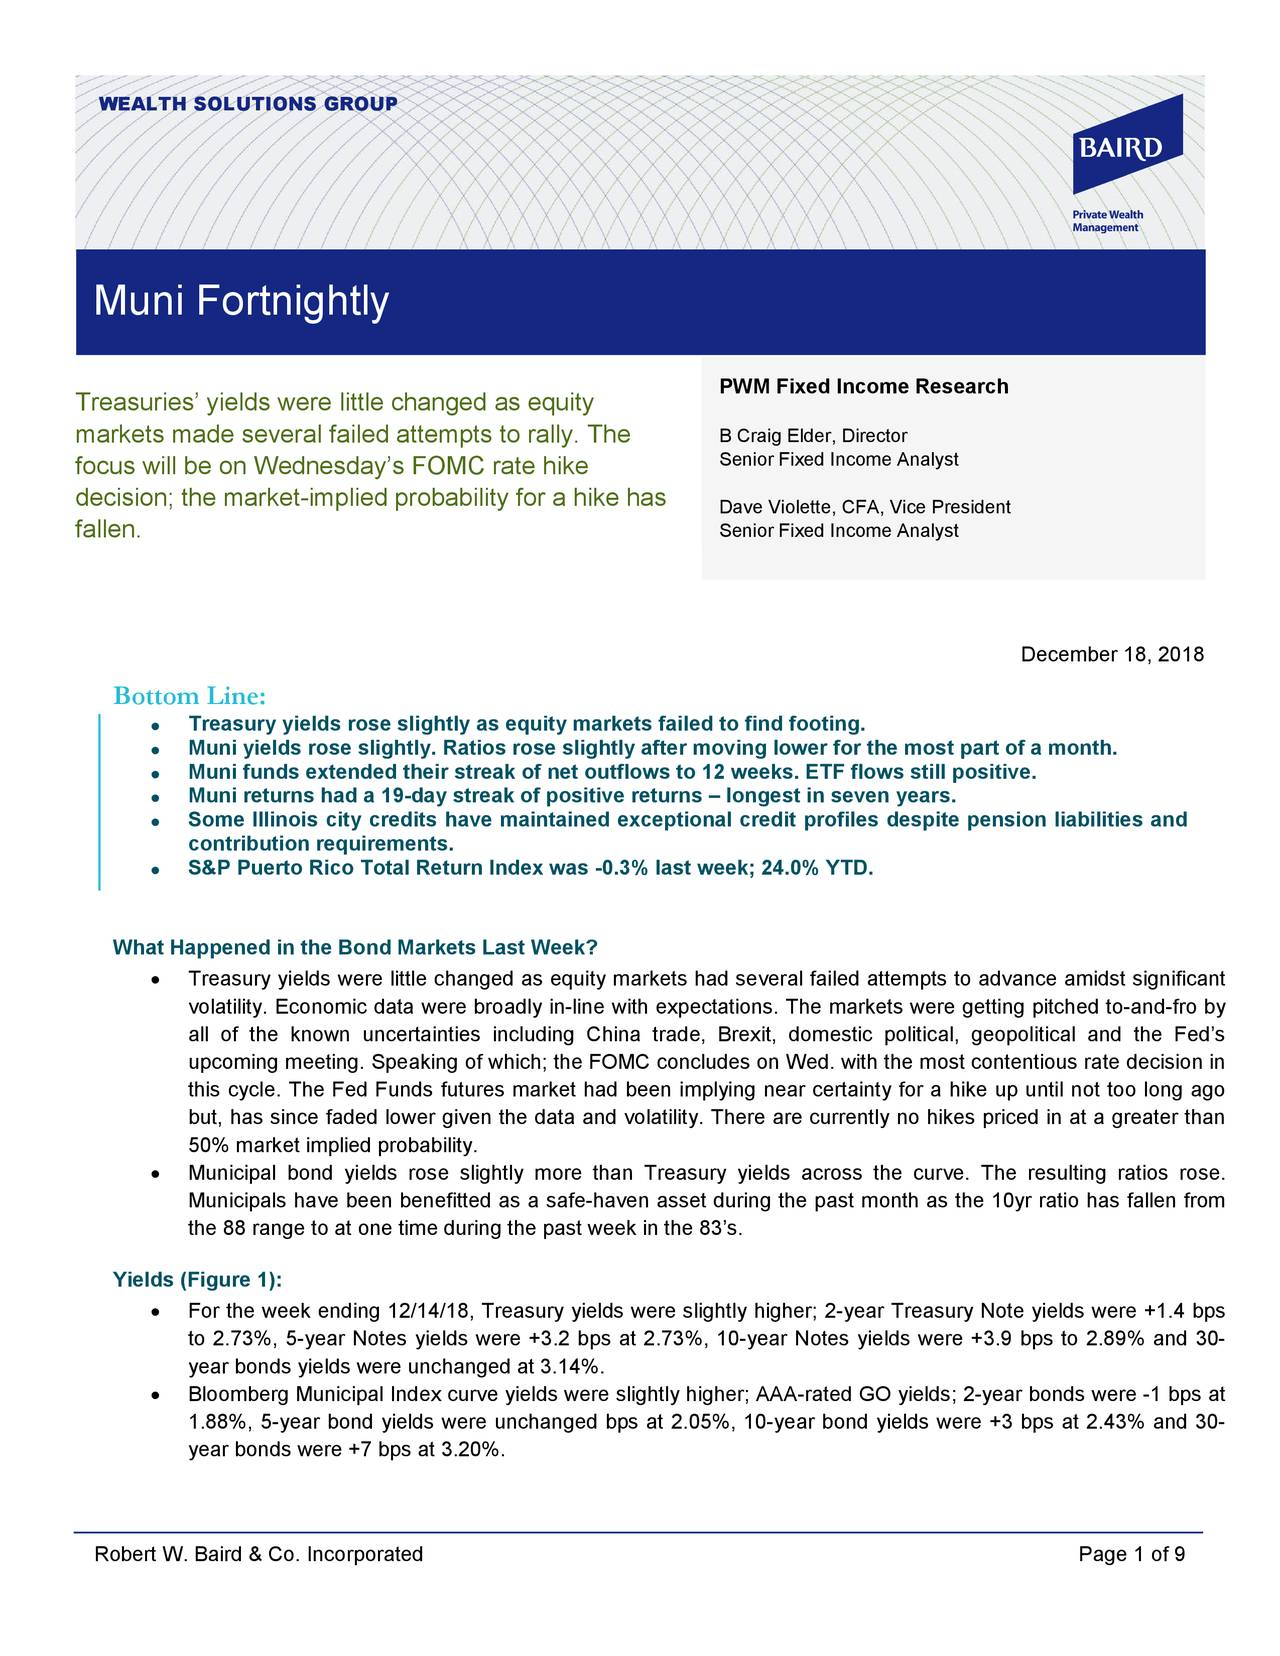 Muni Fortnightly PWM Fixed Income Research Treasuries' yields were little changed as equity markets made several failed attempts to rally. The David N. Violette, CFA, Vice President Senior Fixed Income Analyst focus will be on Wednesday's FOMC rate hike Senior Fixed Income Analyst decision; the market-implied probability for a hike has Dave Violette, CFA, Vice President fallen. Senior Fixed Income Analyst December 18, 2018 Bottom Line: • Treasury yields rose slightly as equity markets failed to find footing. • Muni yields rose slightly. Ratios rose slightly after moving lower for the most part of a month. • Muni funds extended their streak of net outflows to 12 weeks. ETF flows still positive. • Muni returns had a 19-day streak of positive returns – longest in seven years. Some Illinois city credits have maintained exceptional credit profiles despite pension liabilities and • contribution requirements. • S&P Puerto Rico Total Return Index was -0.3% last week; 24.0% YTD. What Happened in the Bond Markets Last Week? • Treasury yields were little changed as equity markets had several failed attempts to advance amidst significant volatility. Economic data were broadly in-line with expectations. The markets were getting pitched to-and-fro by all of the known uncertainties including China trade, Brexit, domestic political, geopolitical and the Fed's upcoming meeting. Speaking of which; the FOMC concludes on Wed. with the most contentious rate decision in this cycle. The Fed Funds futures market had been implying near certainty for a hike up until not too long ago but, has since faded lower given the data and volatility. There are currently no hikes priced in at a greater than 50% market implied probability. • Municipal bond yields rose slightly more than Treasury yields across the curv e. The resulting ratios rose. Municipals have been benefitted as a safe- haven asset during the past month as the 10yr ratio has fallen from the 88 range to at one time during the past week in the 83's. Yields (Figure 1): • For the week ending 12/14/18, Treasury yields were slightly higher; 2- year Treasury Note yields were +1.4 bps to 2.73%, 5-year Notes yields were +3.2 bps at 2.73%, 10- year Notes yields were +3.9 bps to 2.89% and 30- year bonds yields were unchanged at 3.14%. • Bloomberg Municipal Index curve yields were slightly higher; AAA-rated GO yields; 2-year bonds were -1 bps at 1.88%, 5-year bond yields were unchanged bps at 2.05%, 10- year bond yields were +3 bps at 2.43% and 30- year bonds were +7 bps at 3.20%. Robert W. Baird & Co. Incorporated Page 1 of 9